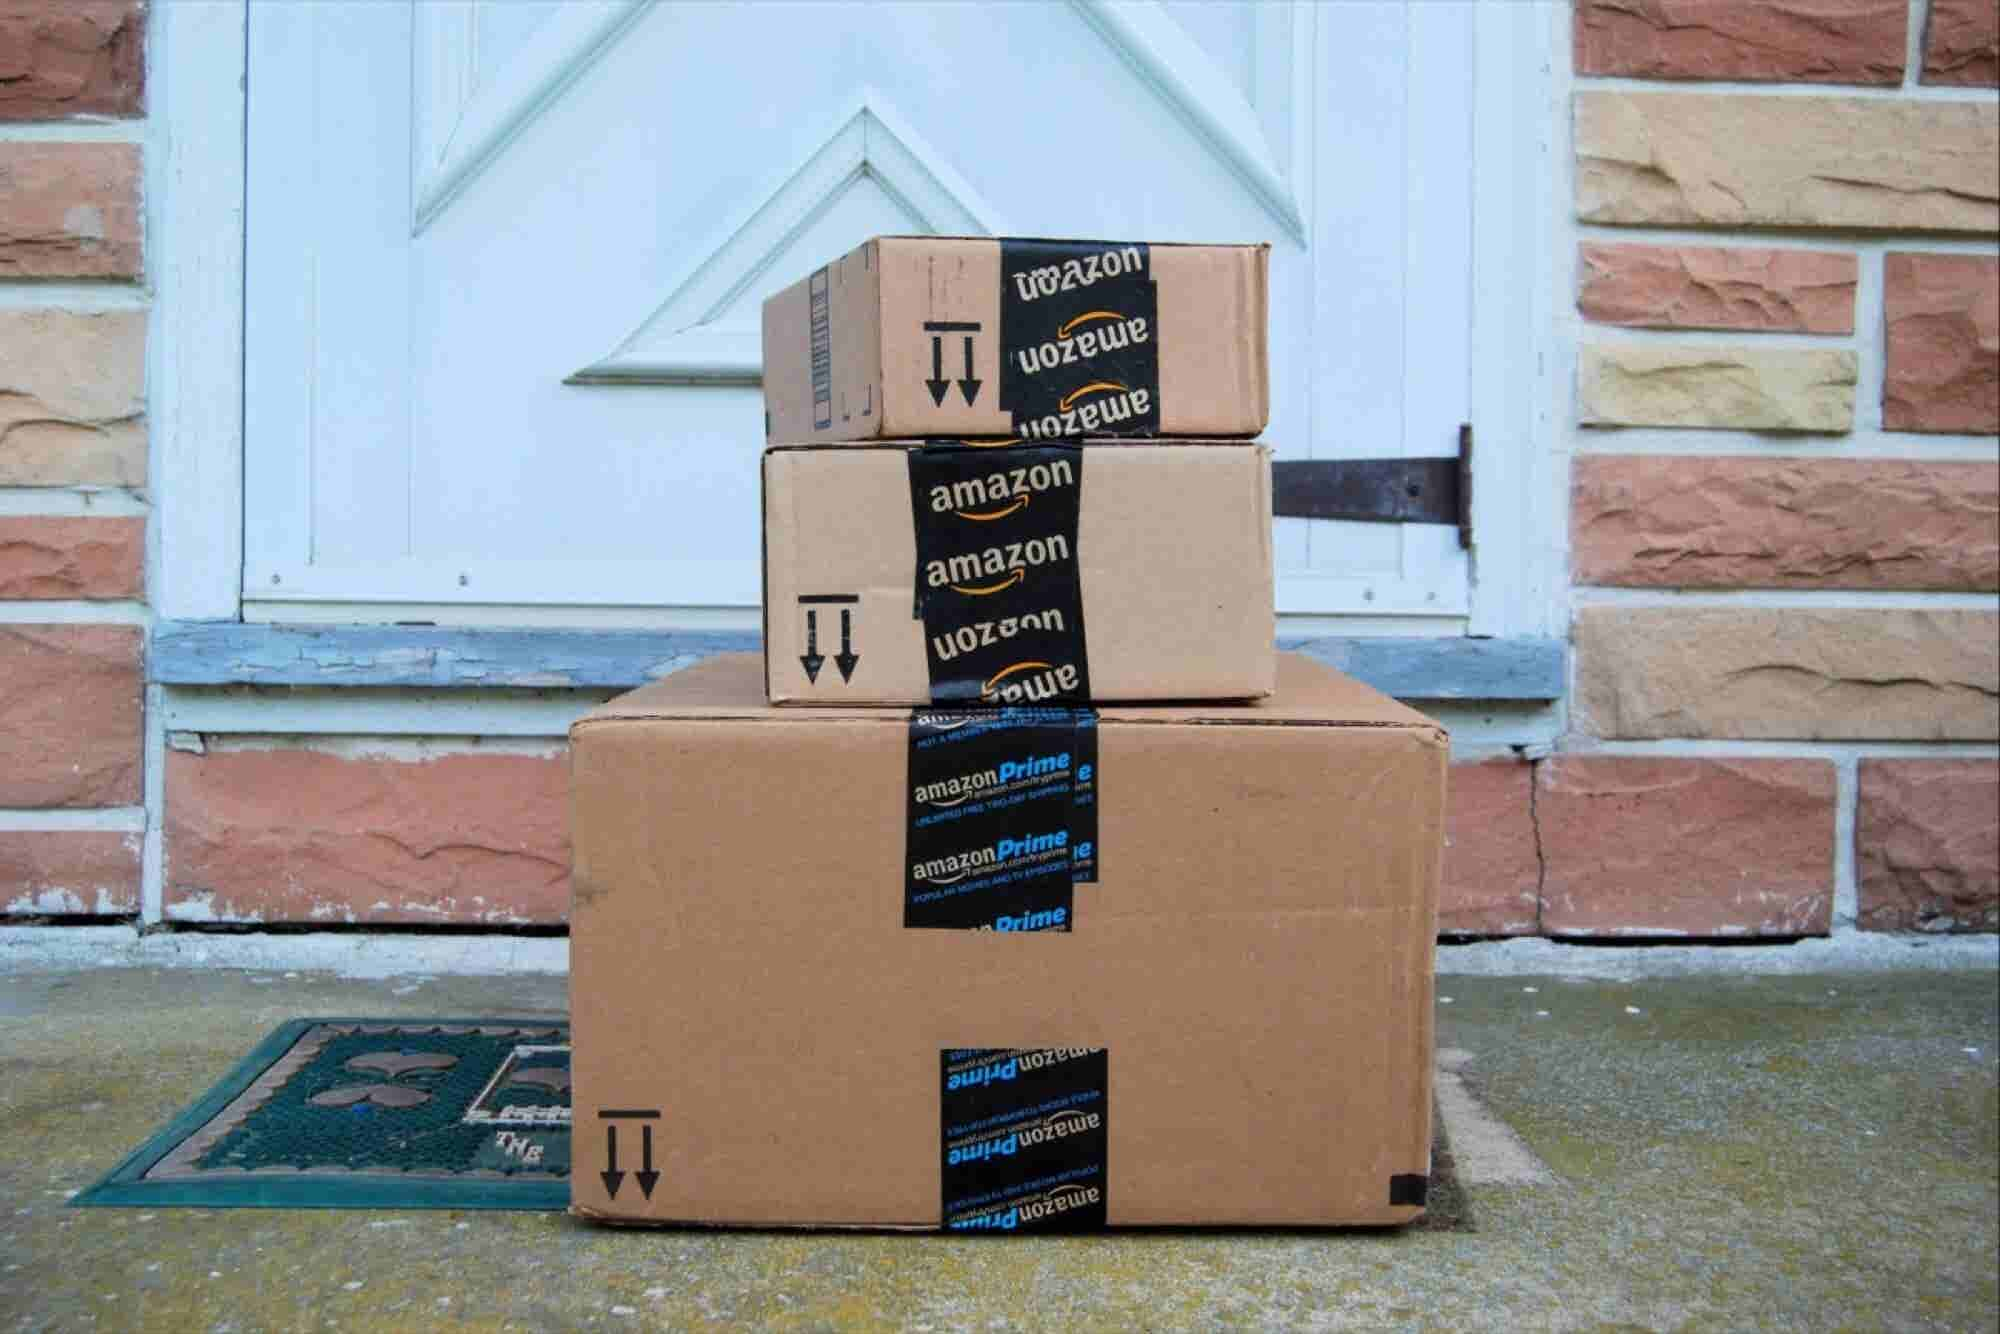 Guide to Starting a 'Fulfillment by Amazon' Business